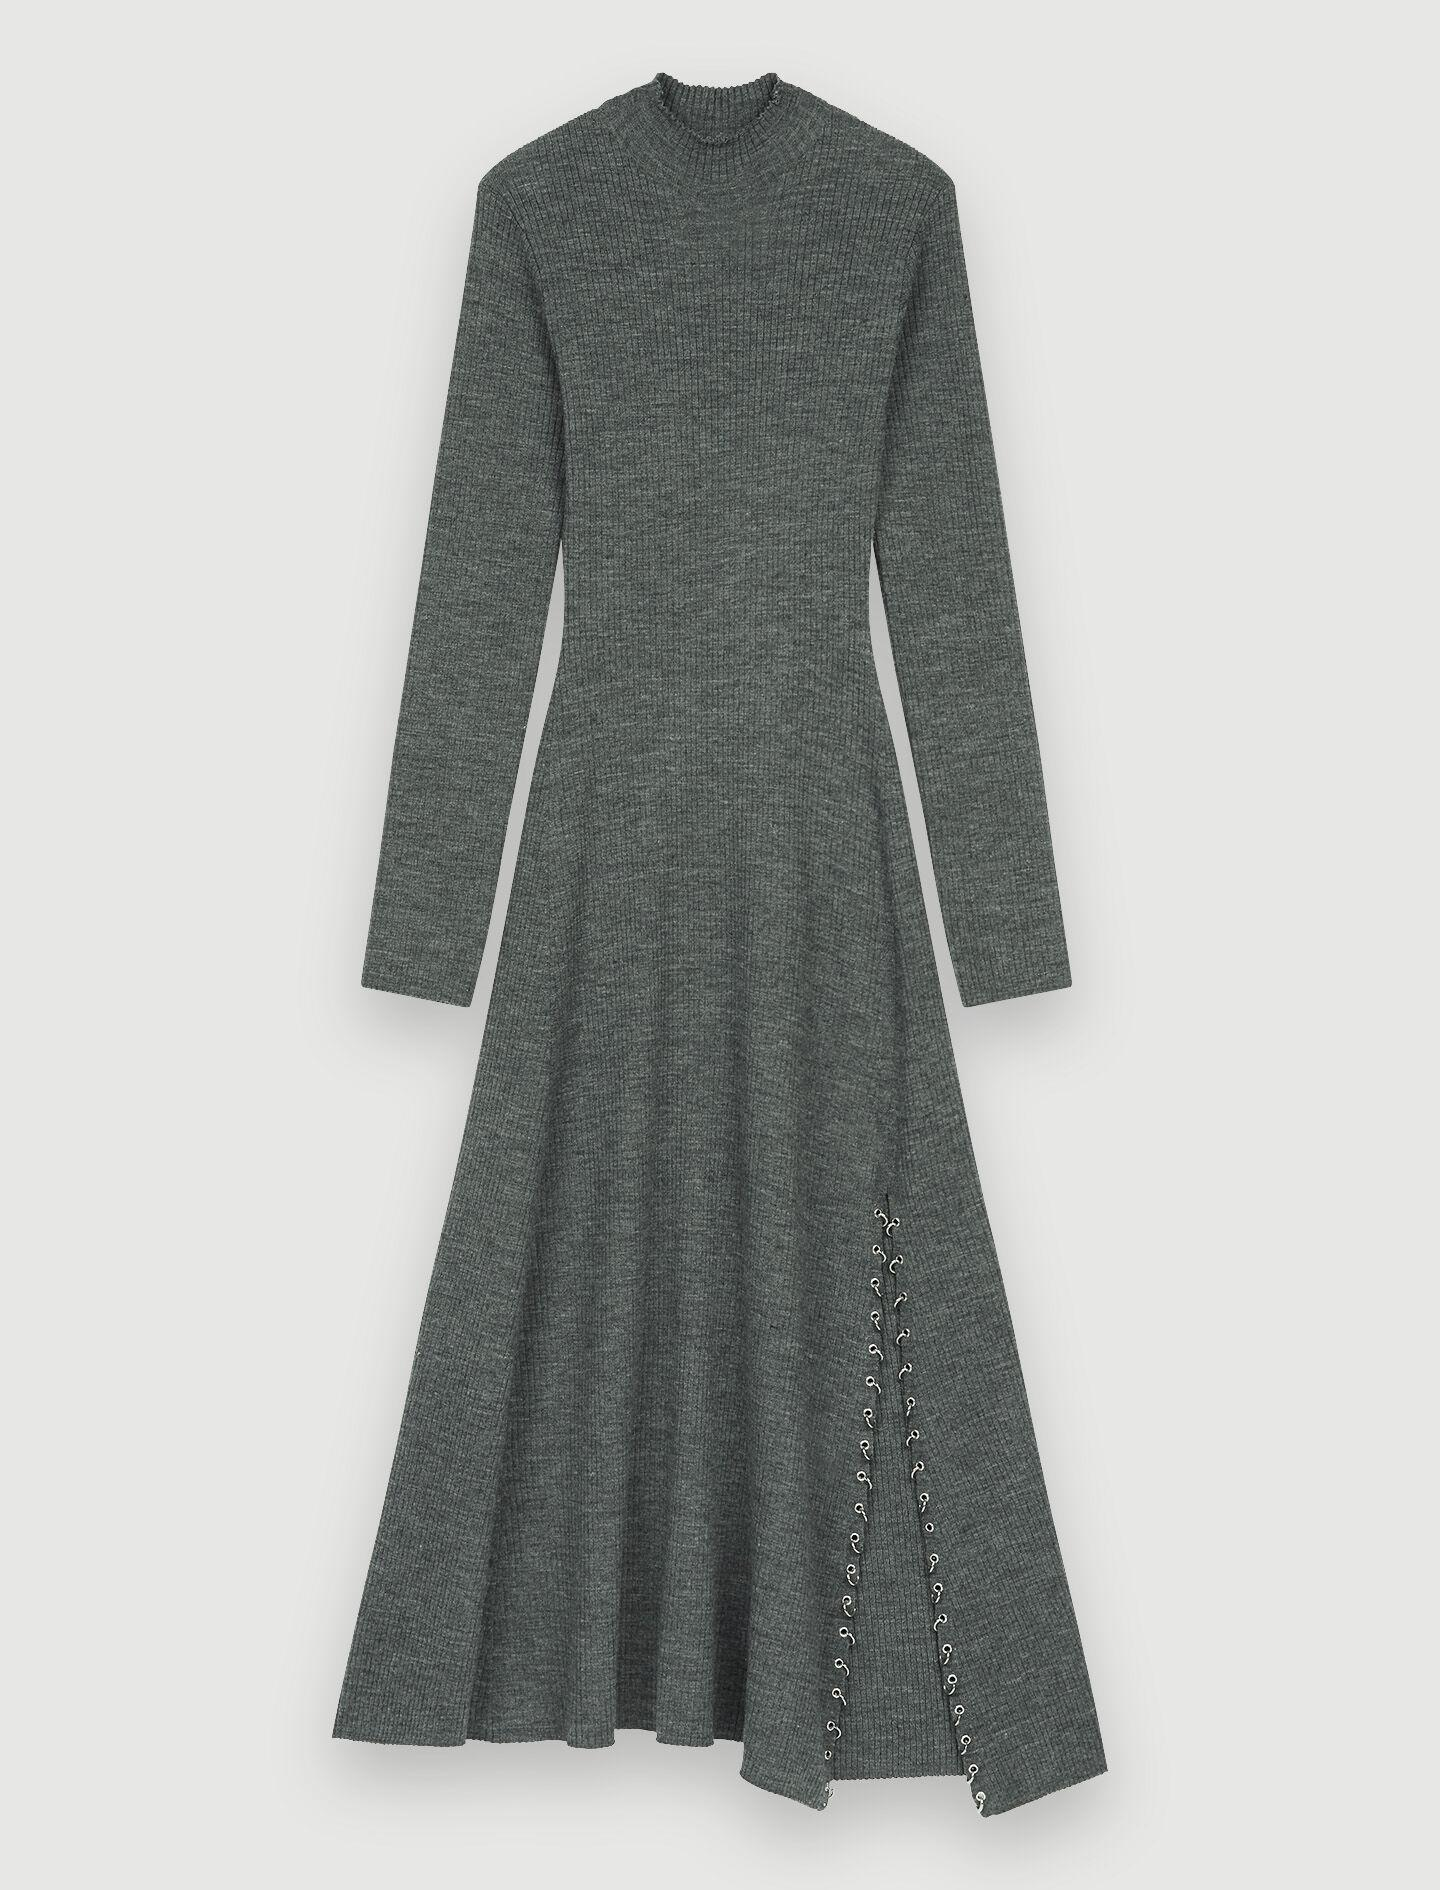 KNITTED SLIT DRESS WITH PIERCINGS 5